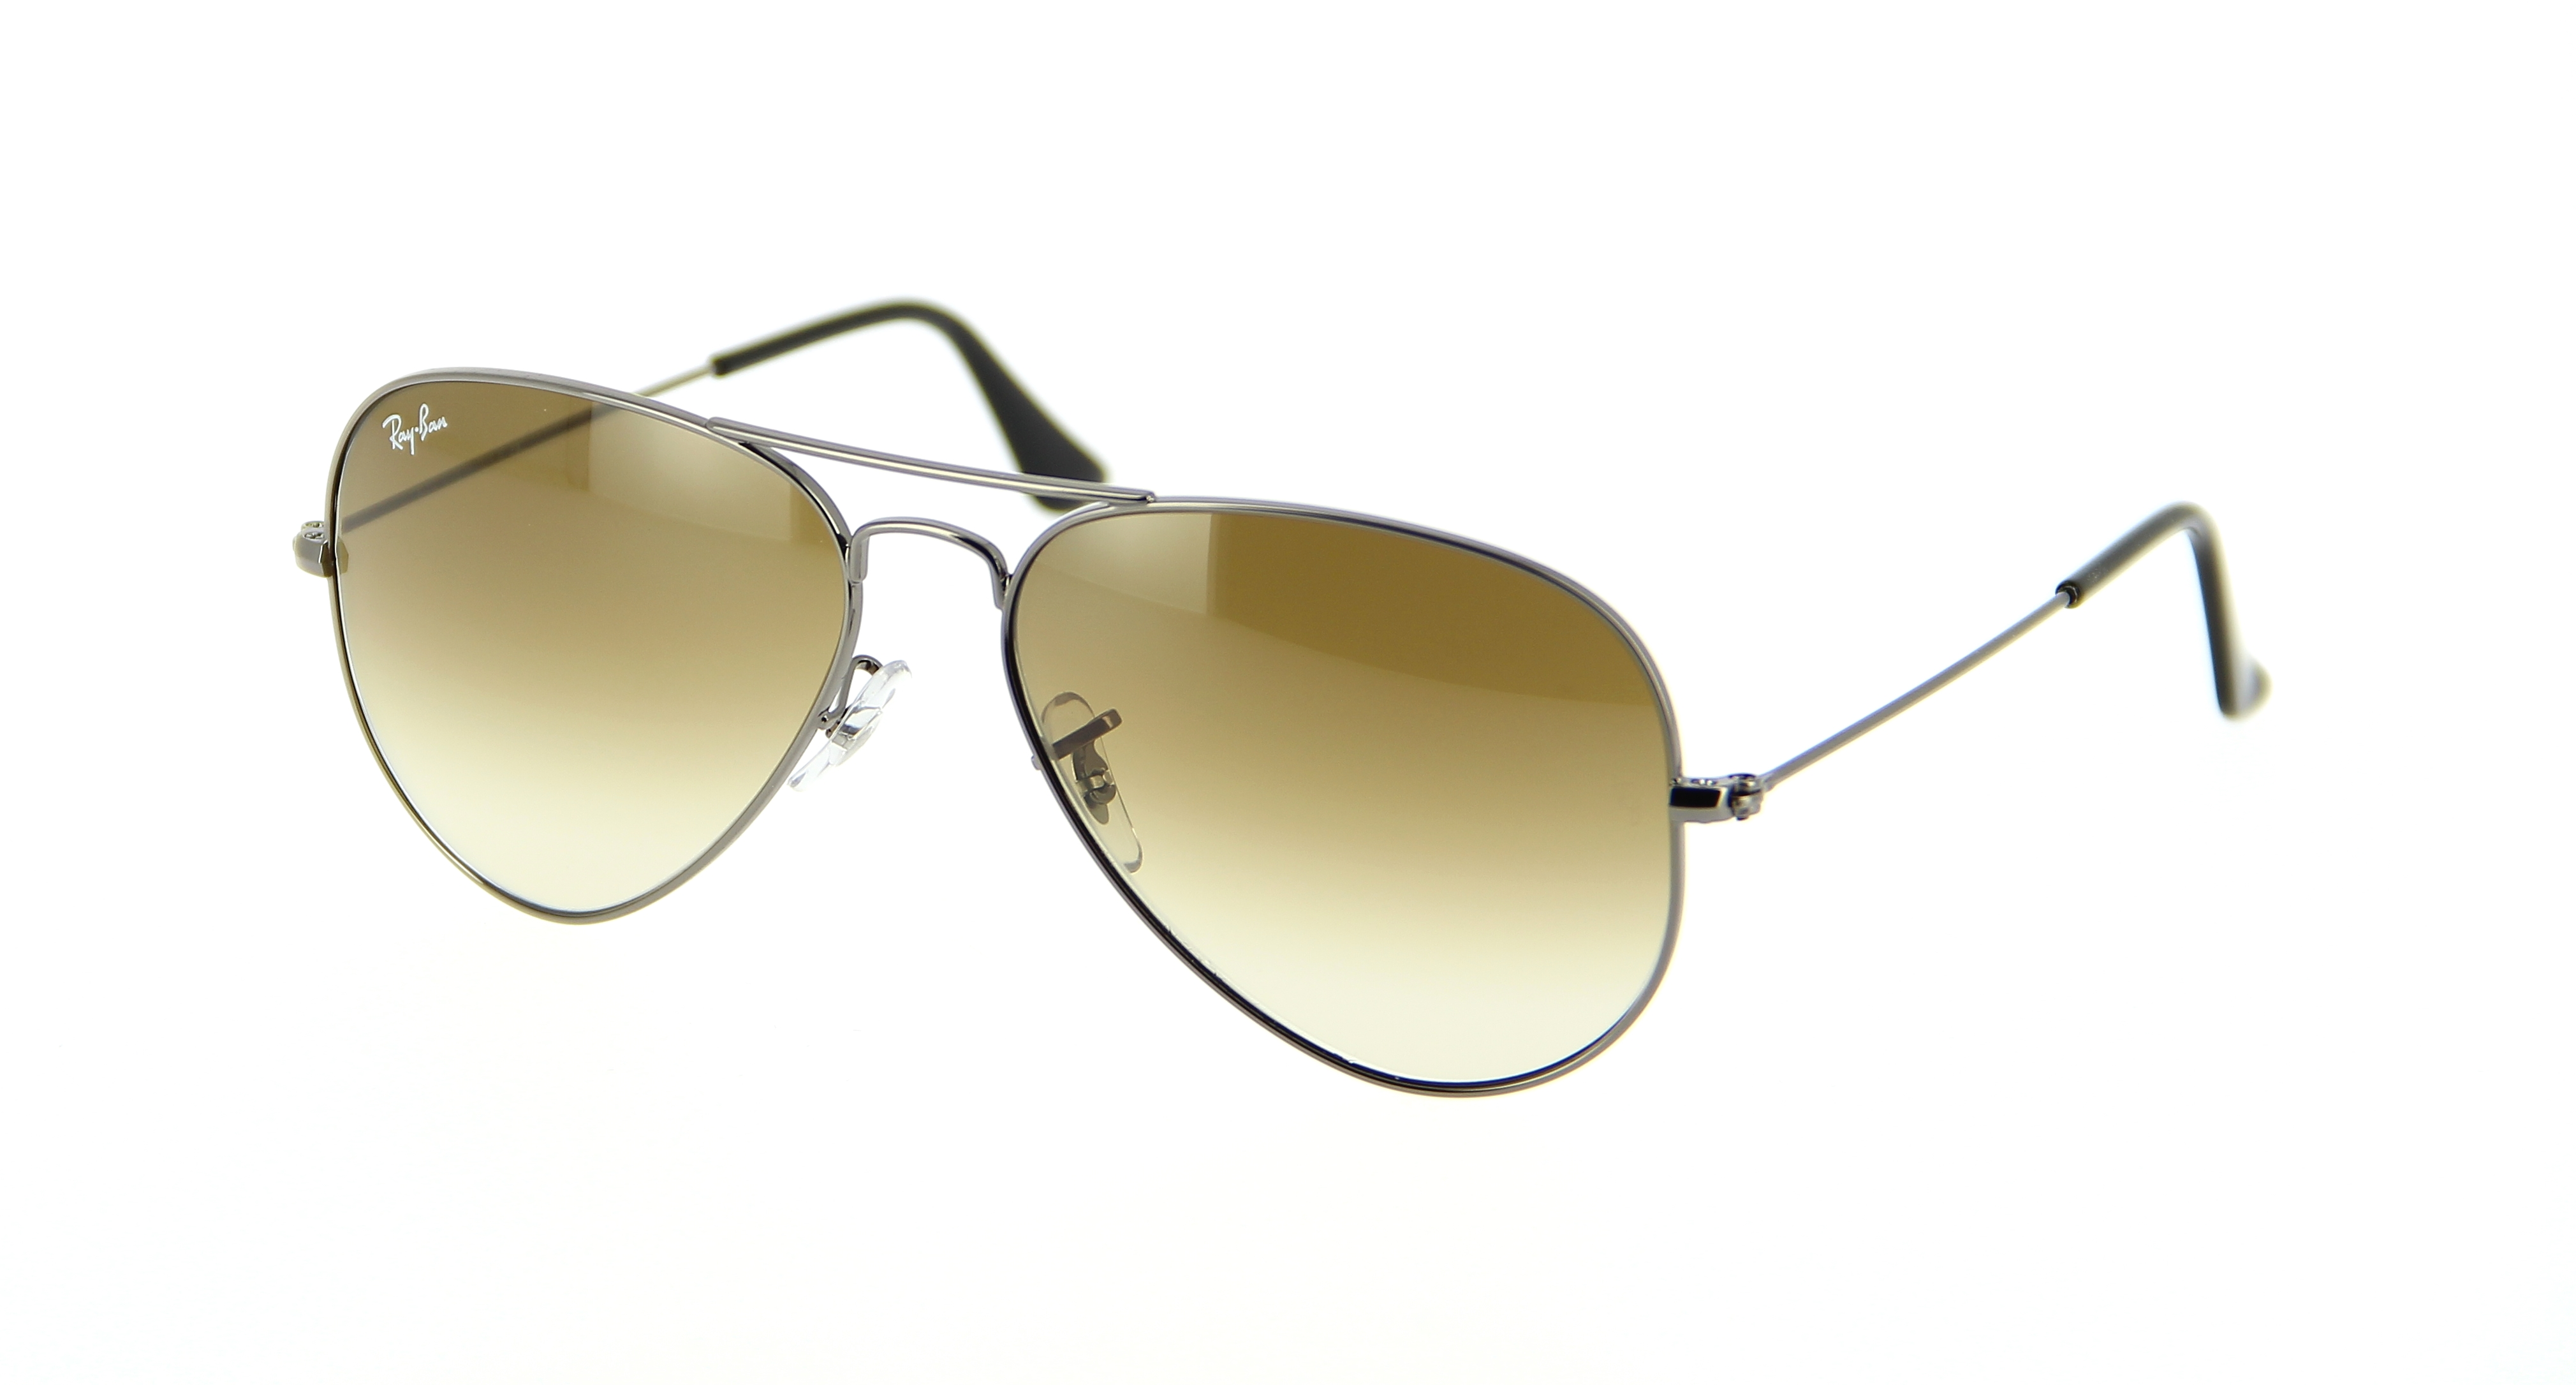 Ray ban model rb3025 for Lunettes de soleil ray ban aviator miroir